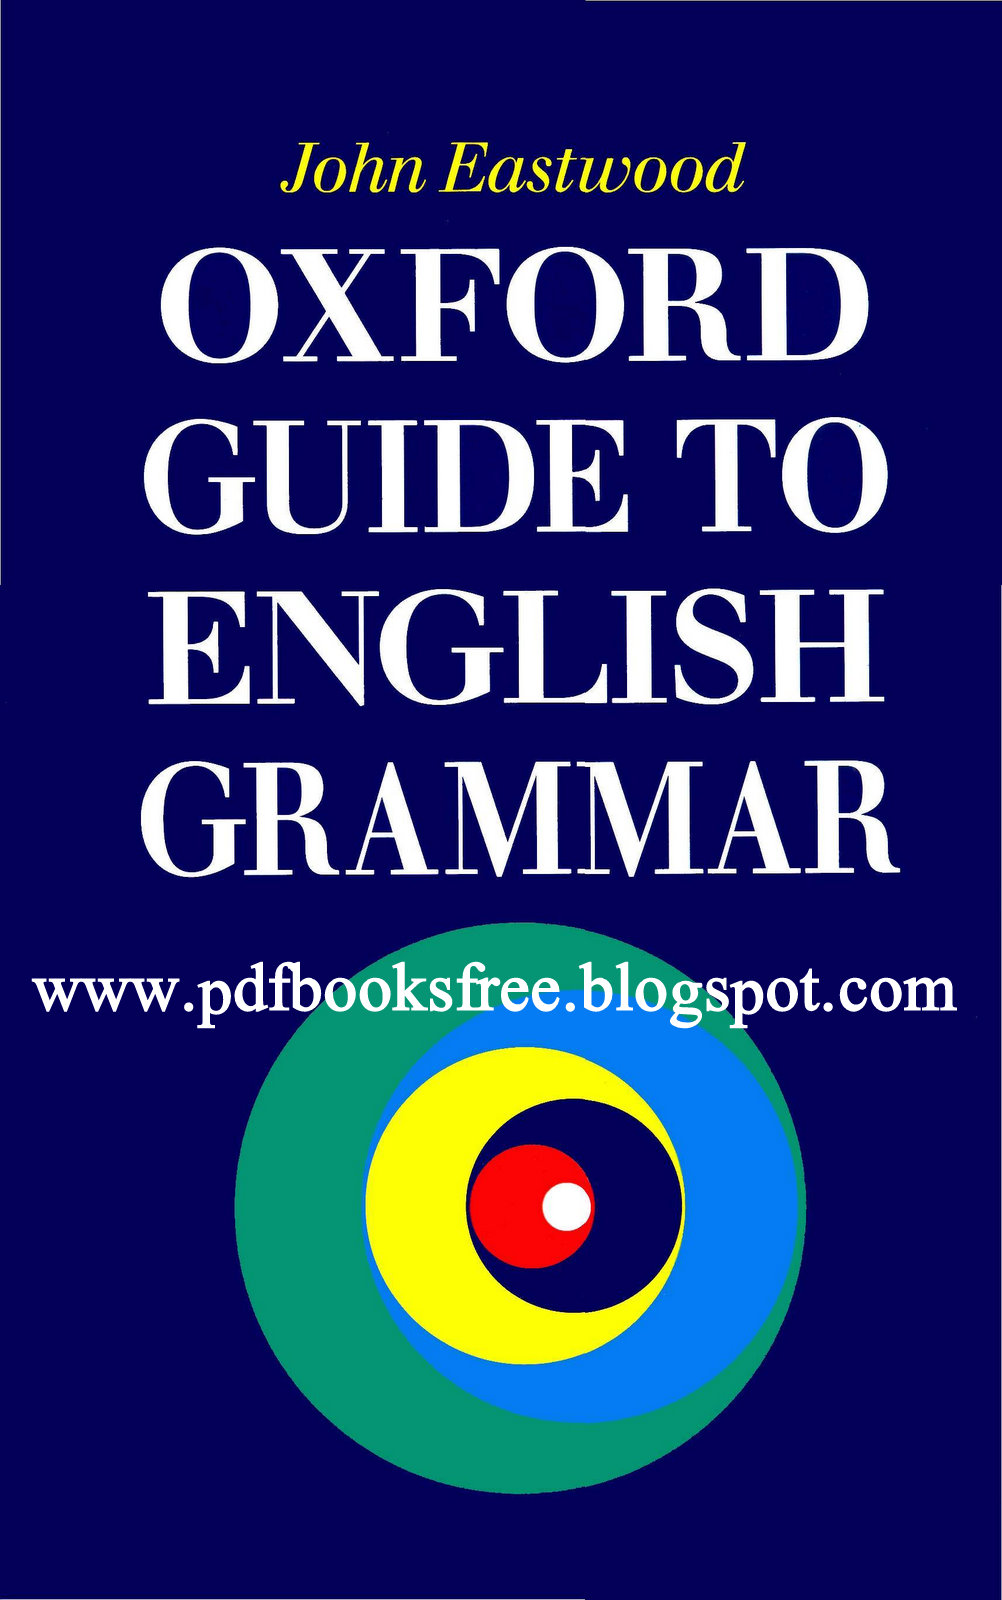 Book For Learning English Pdf